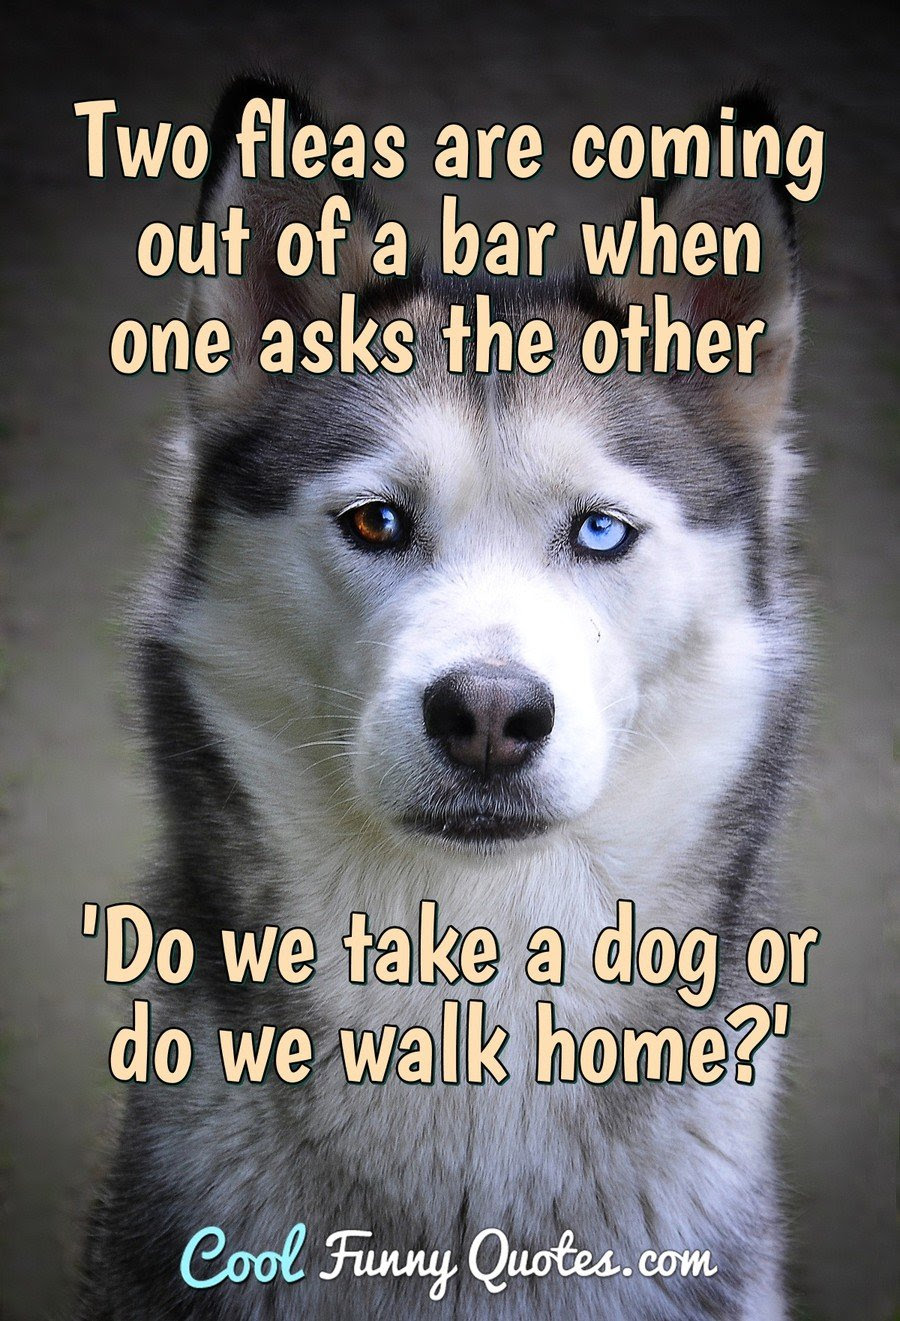 Dog Quotes - Cool Funny Quotes